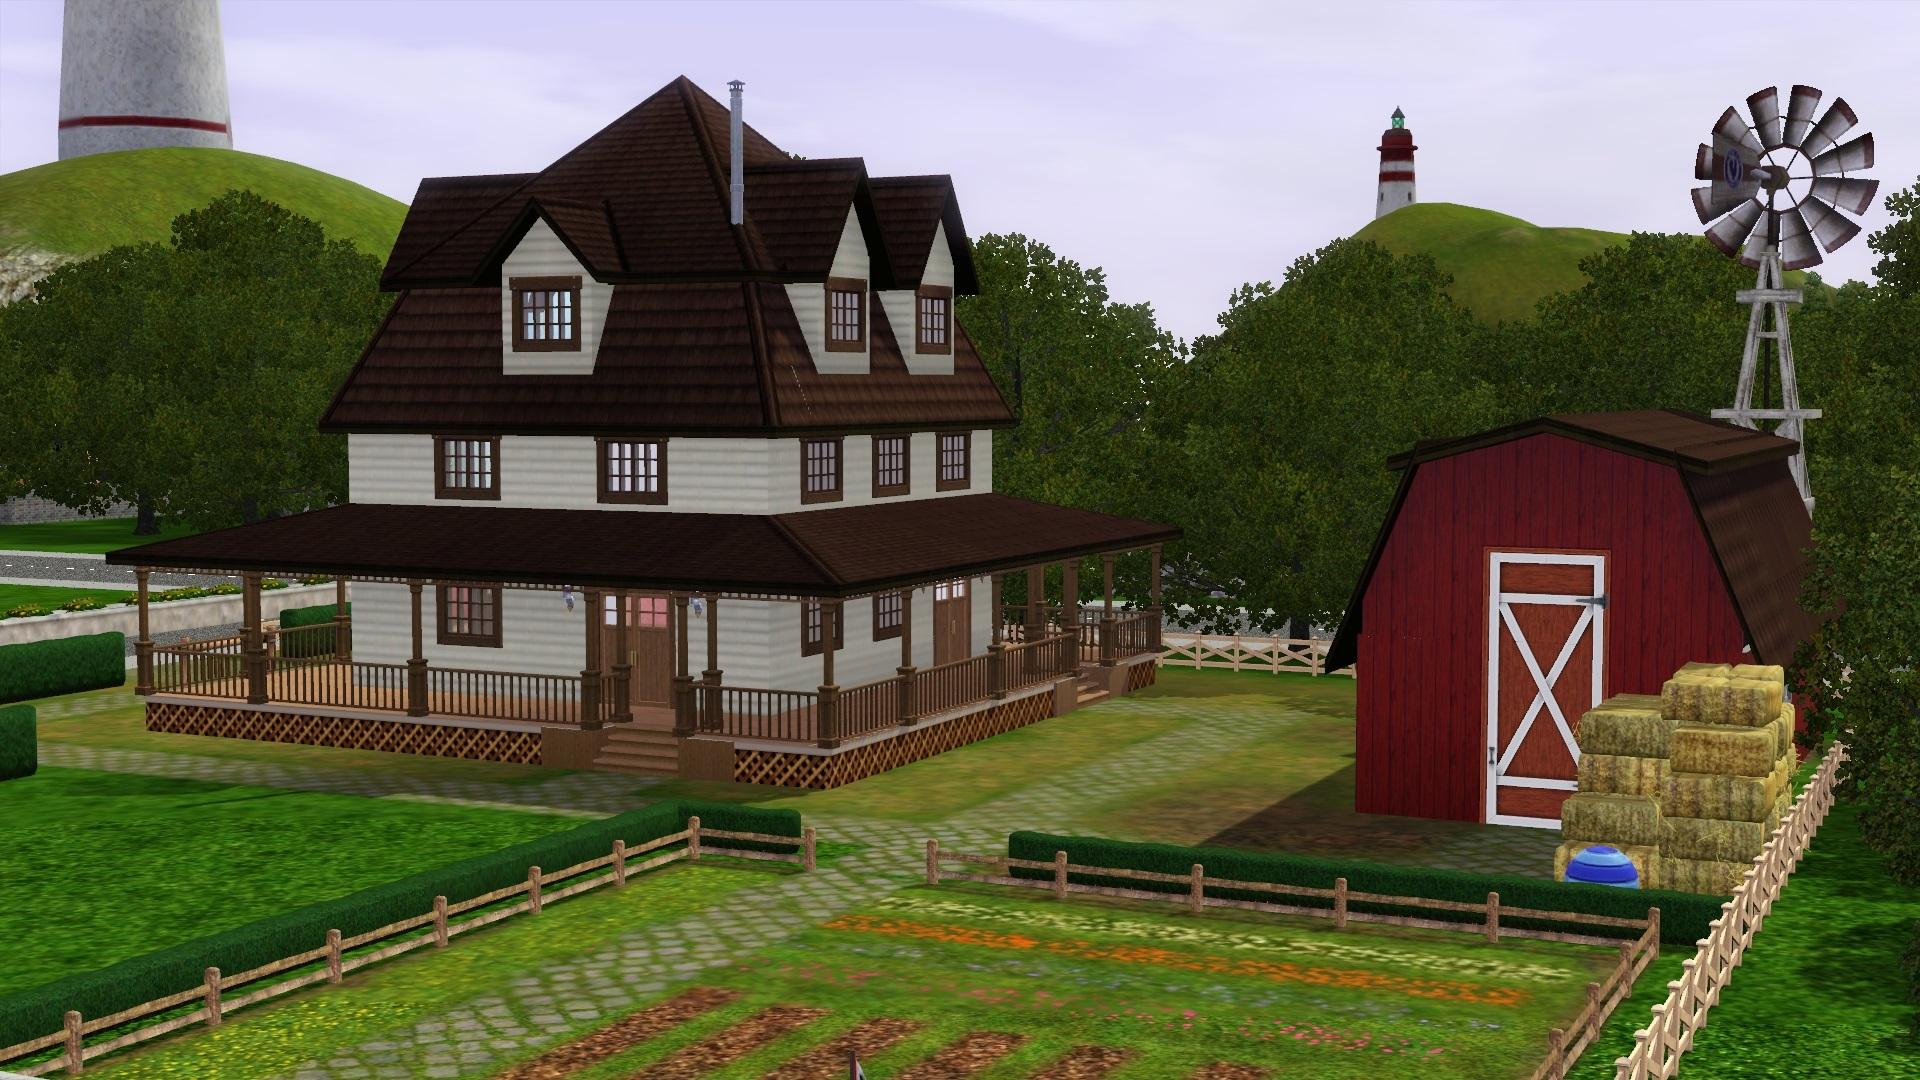 Must have gorgeous sims 3 houses and villas sims 3 mod for Traditional farmhouse